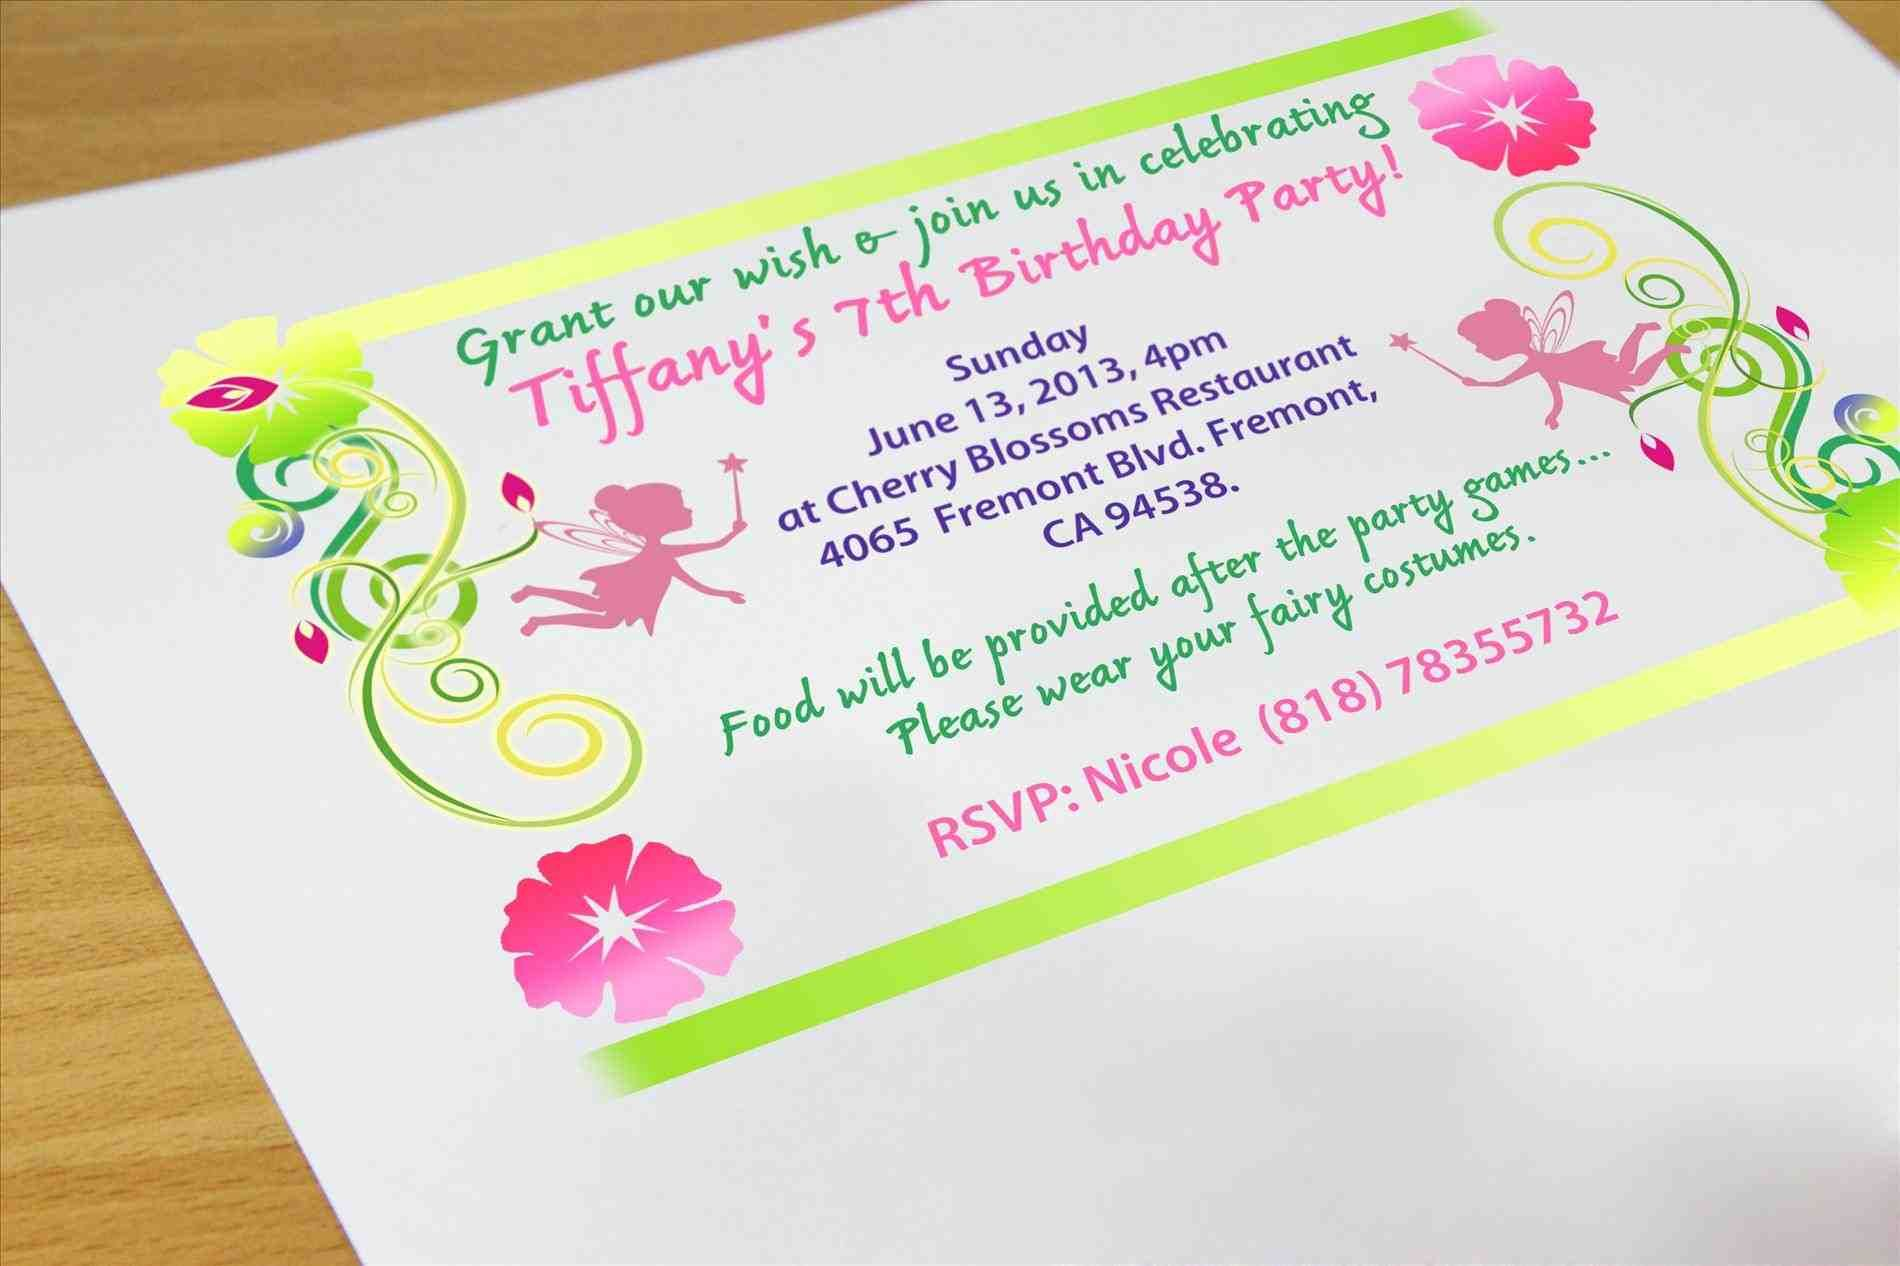 Make Your Own Baby Shower Invitations Online Free To New Style Of Exquisite Invitation Card 279201618 This Incorporates Both A